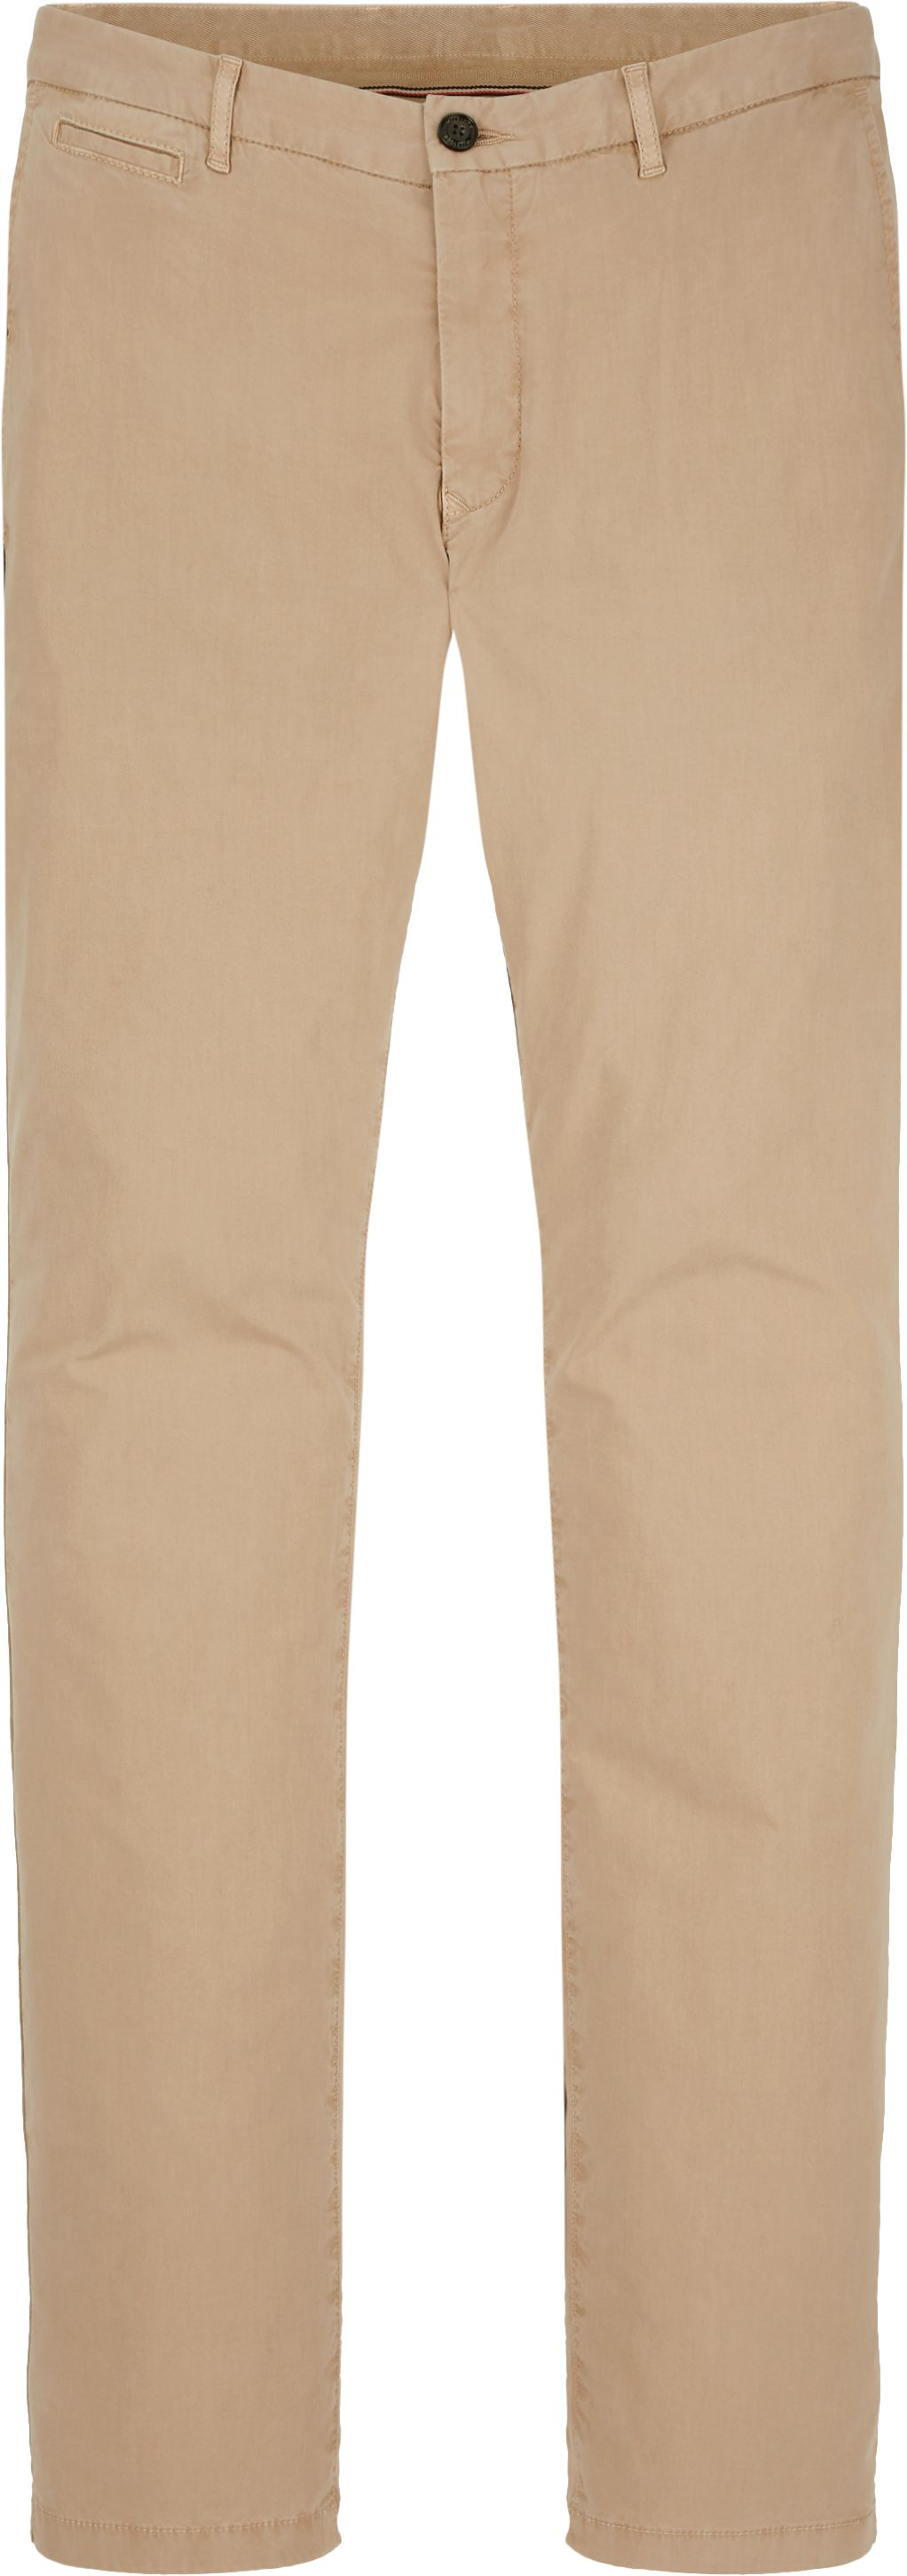 Mens Denton Straight Chino Trousers, White